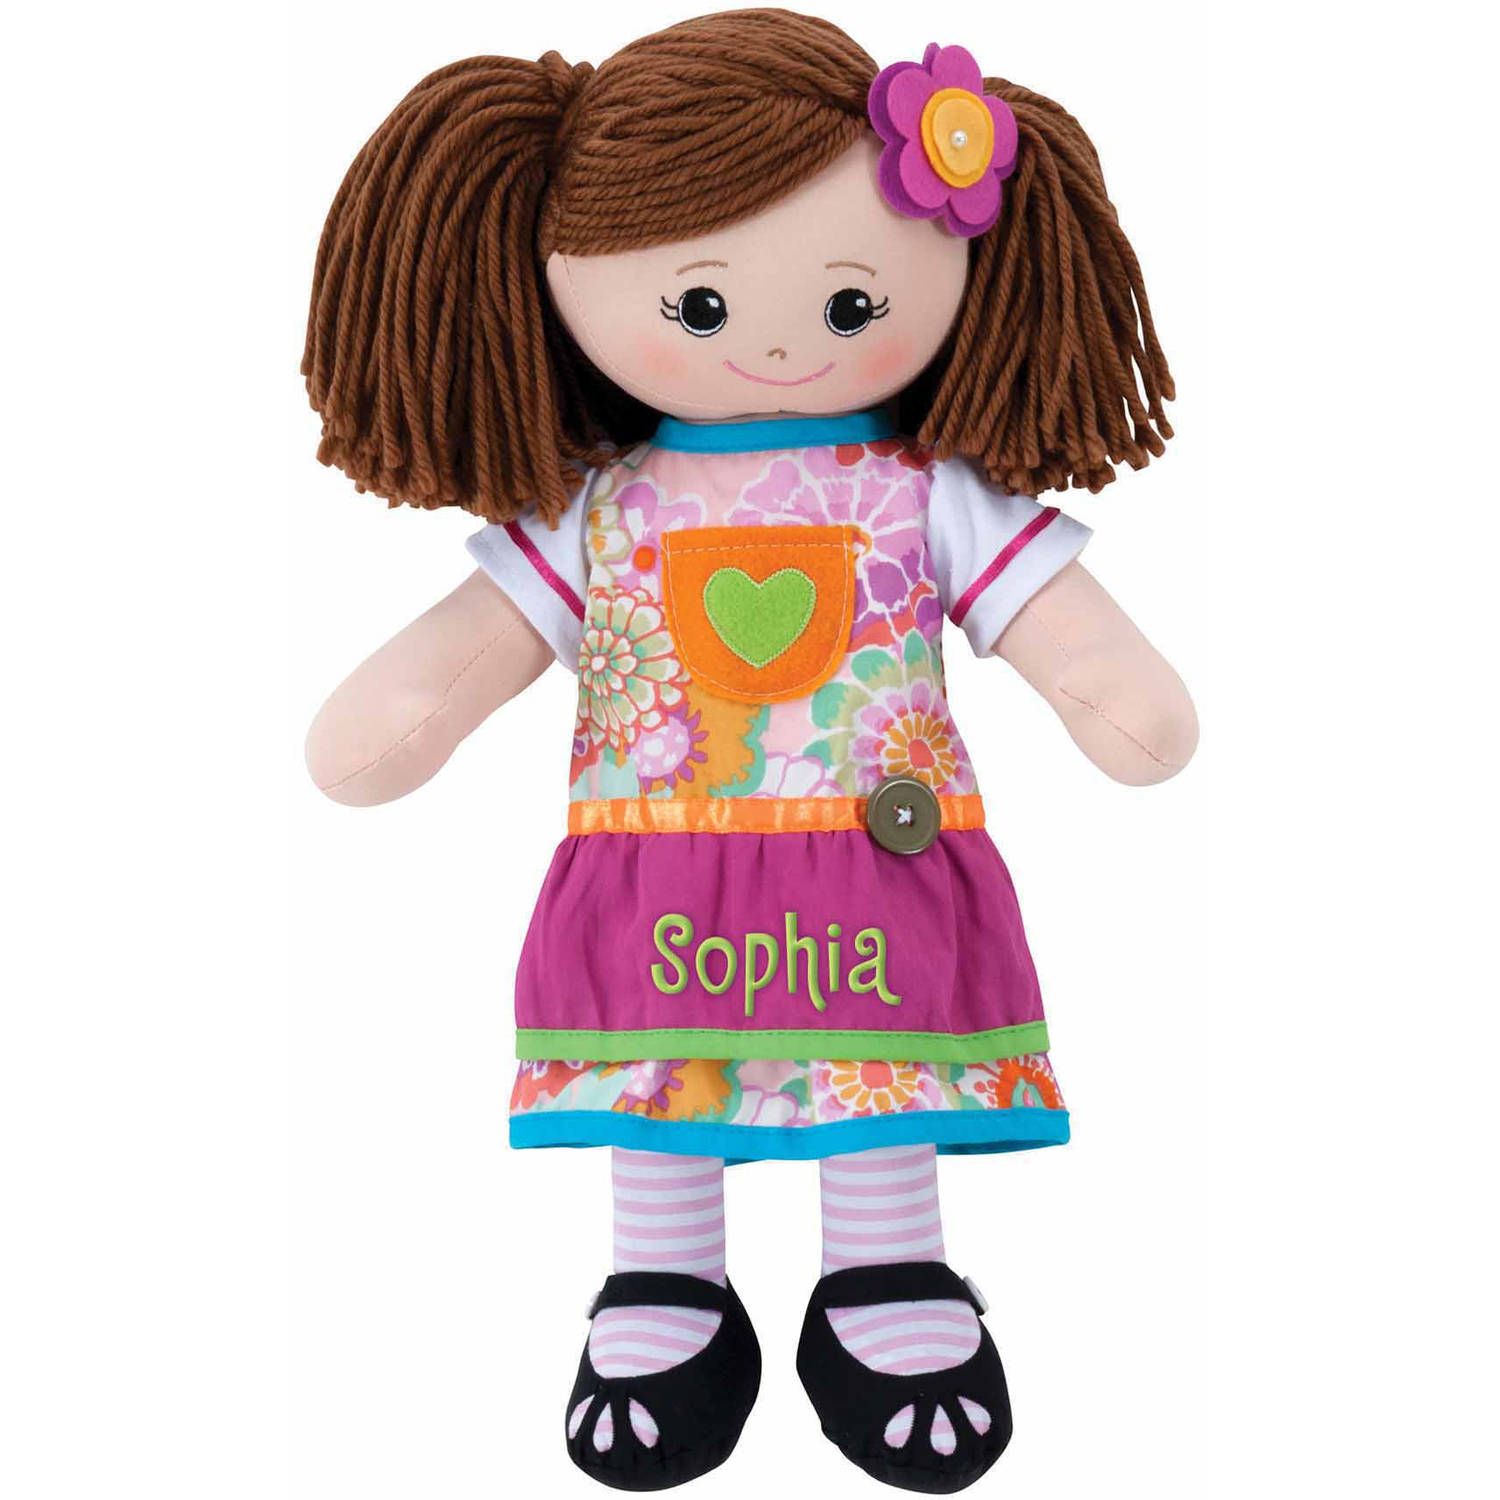 Personalized Doll With Dress and Hair Clip